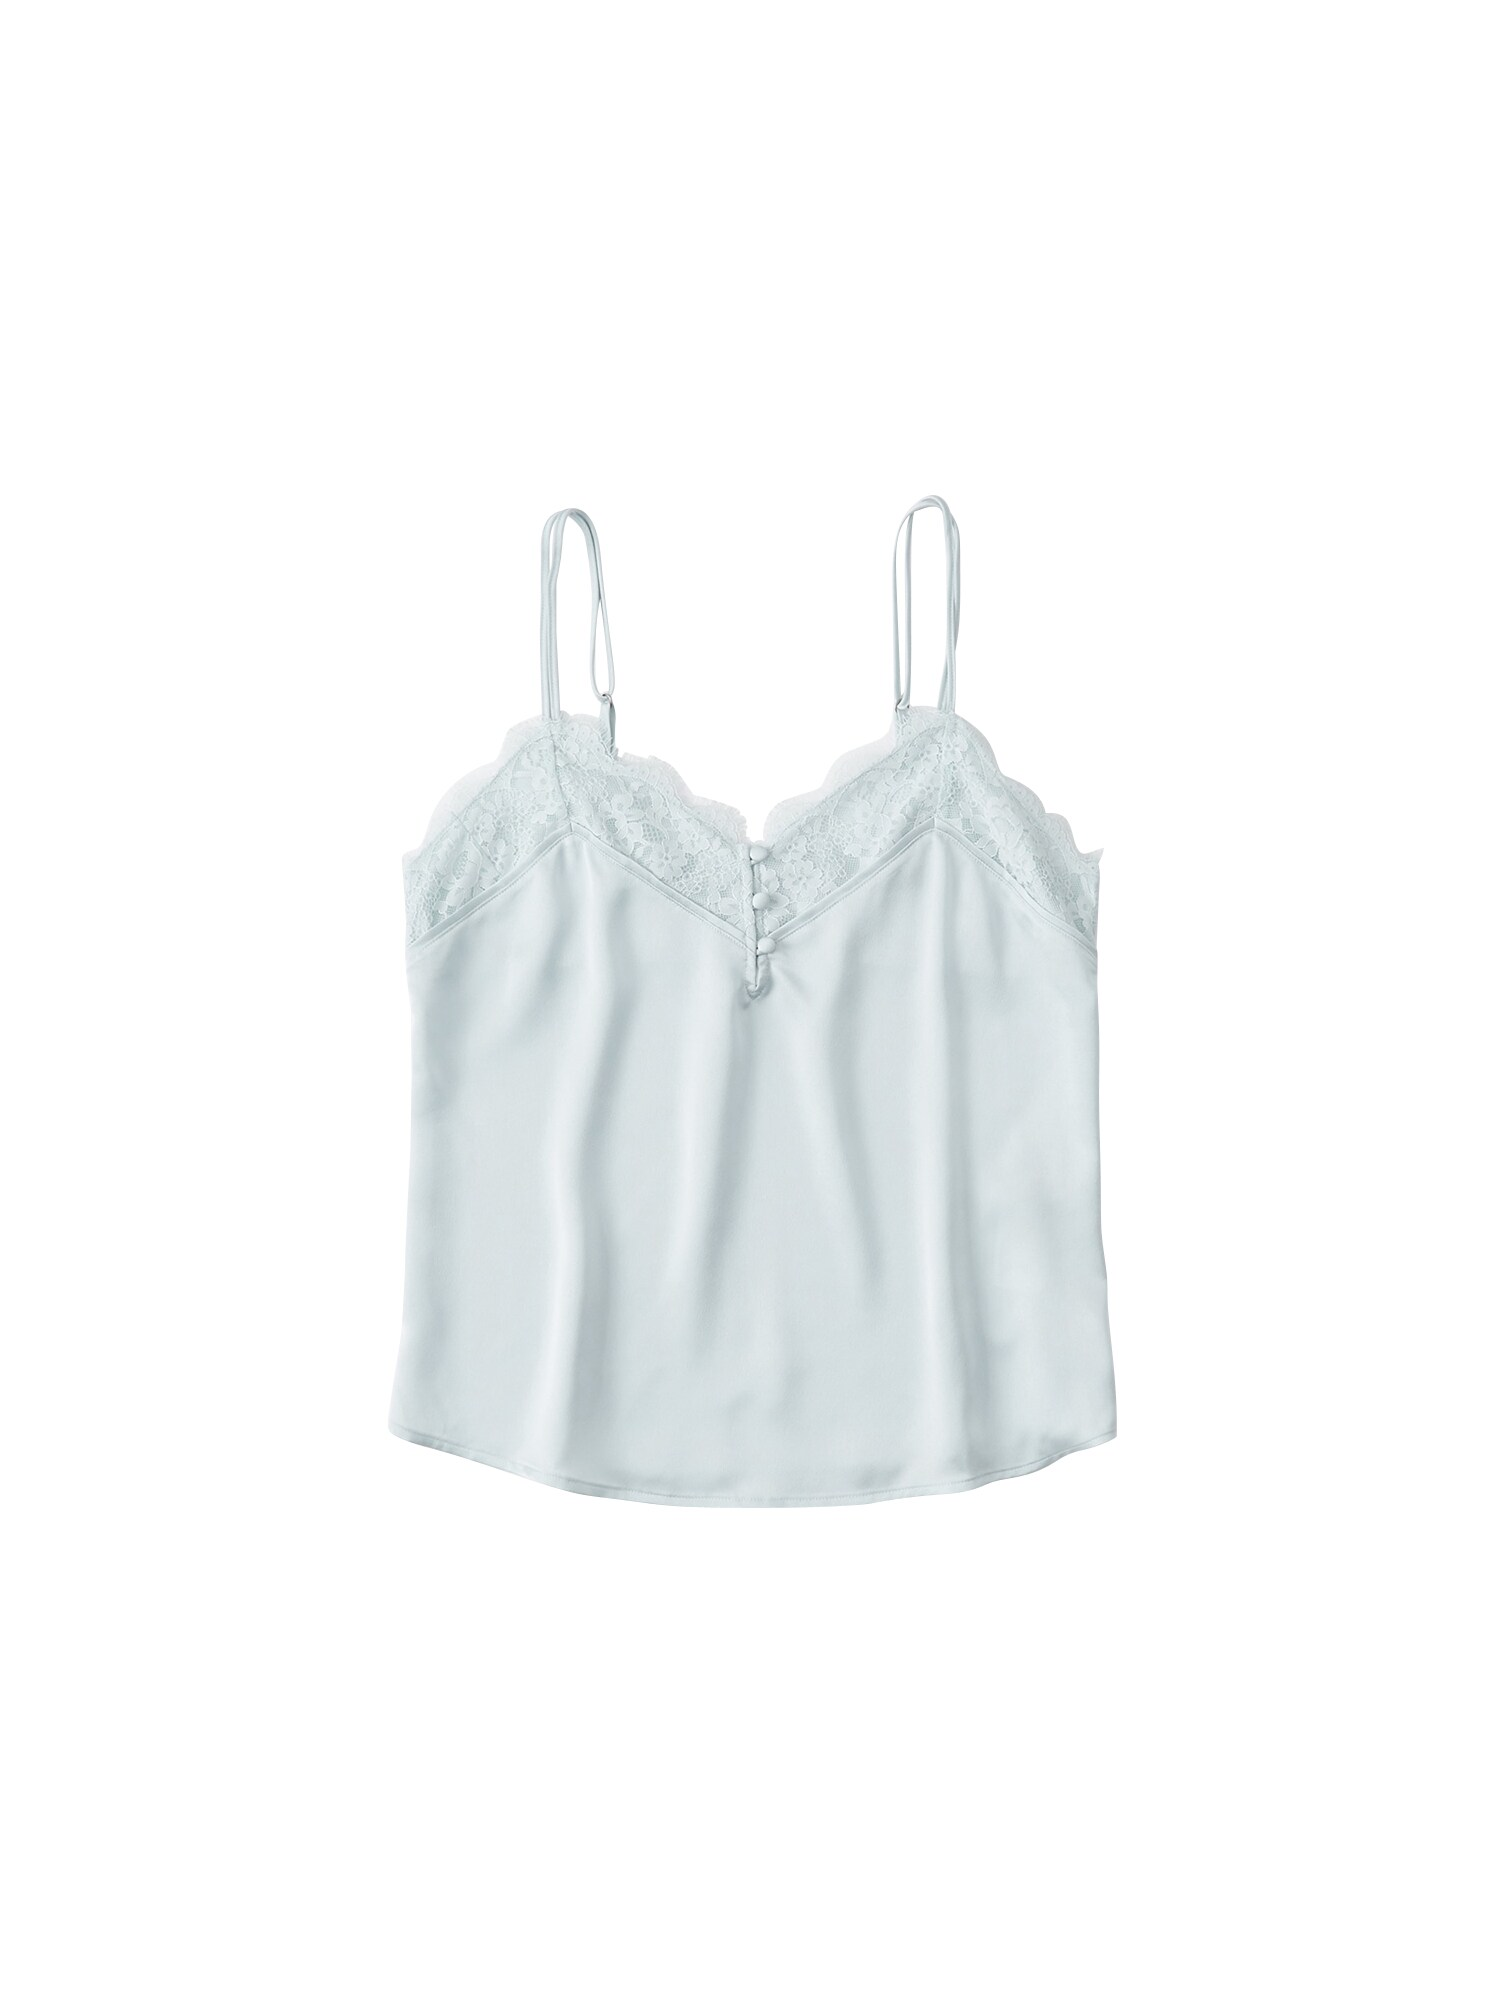 Abercrombie Fitch Top XM19-SCANDY STREET LINGERIE CAMI 3CC modrá Abercrombie & Fitch